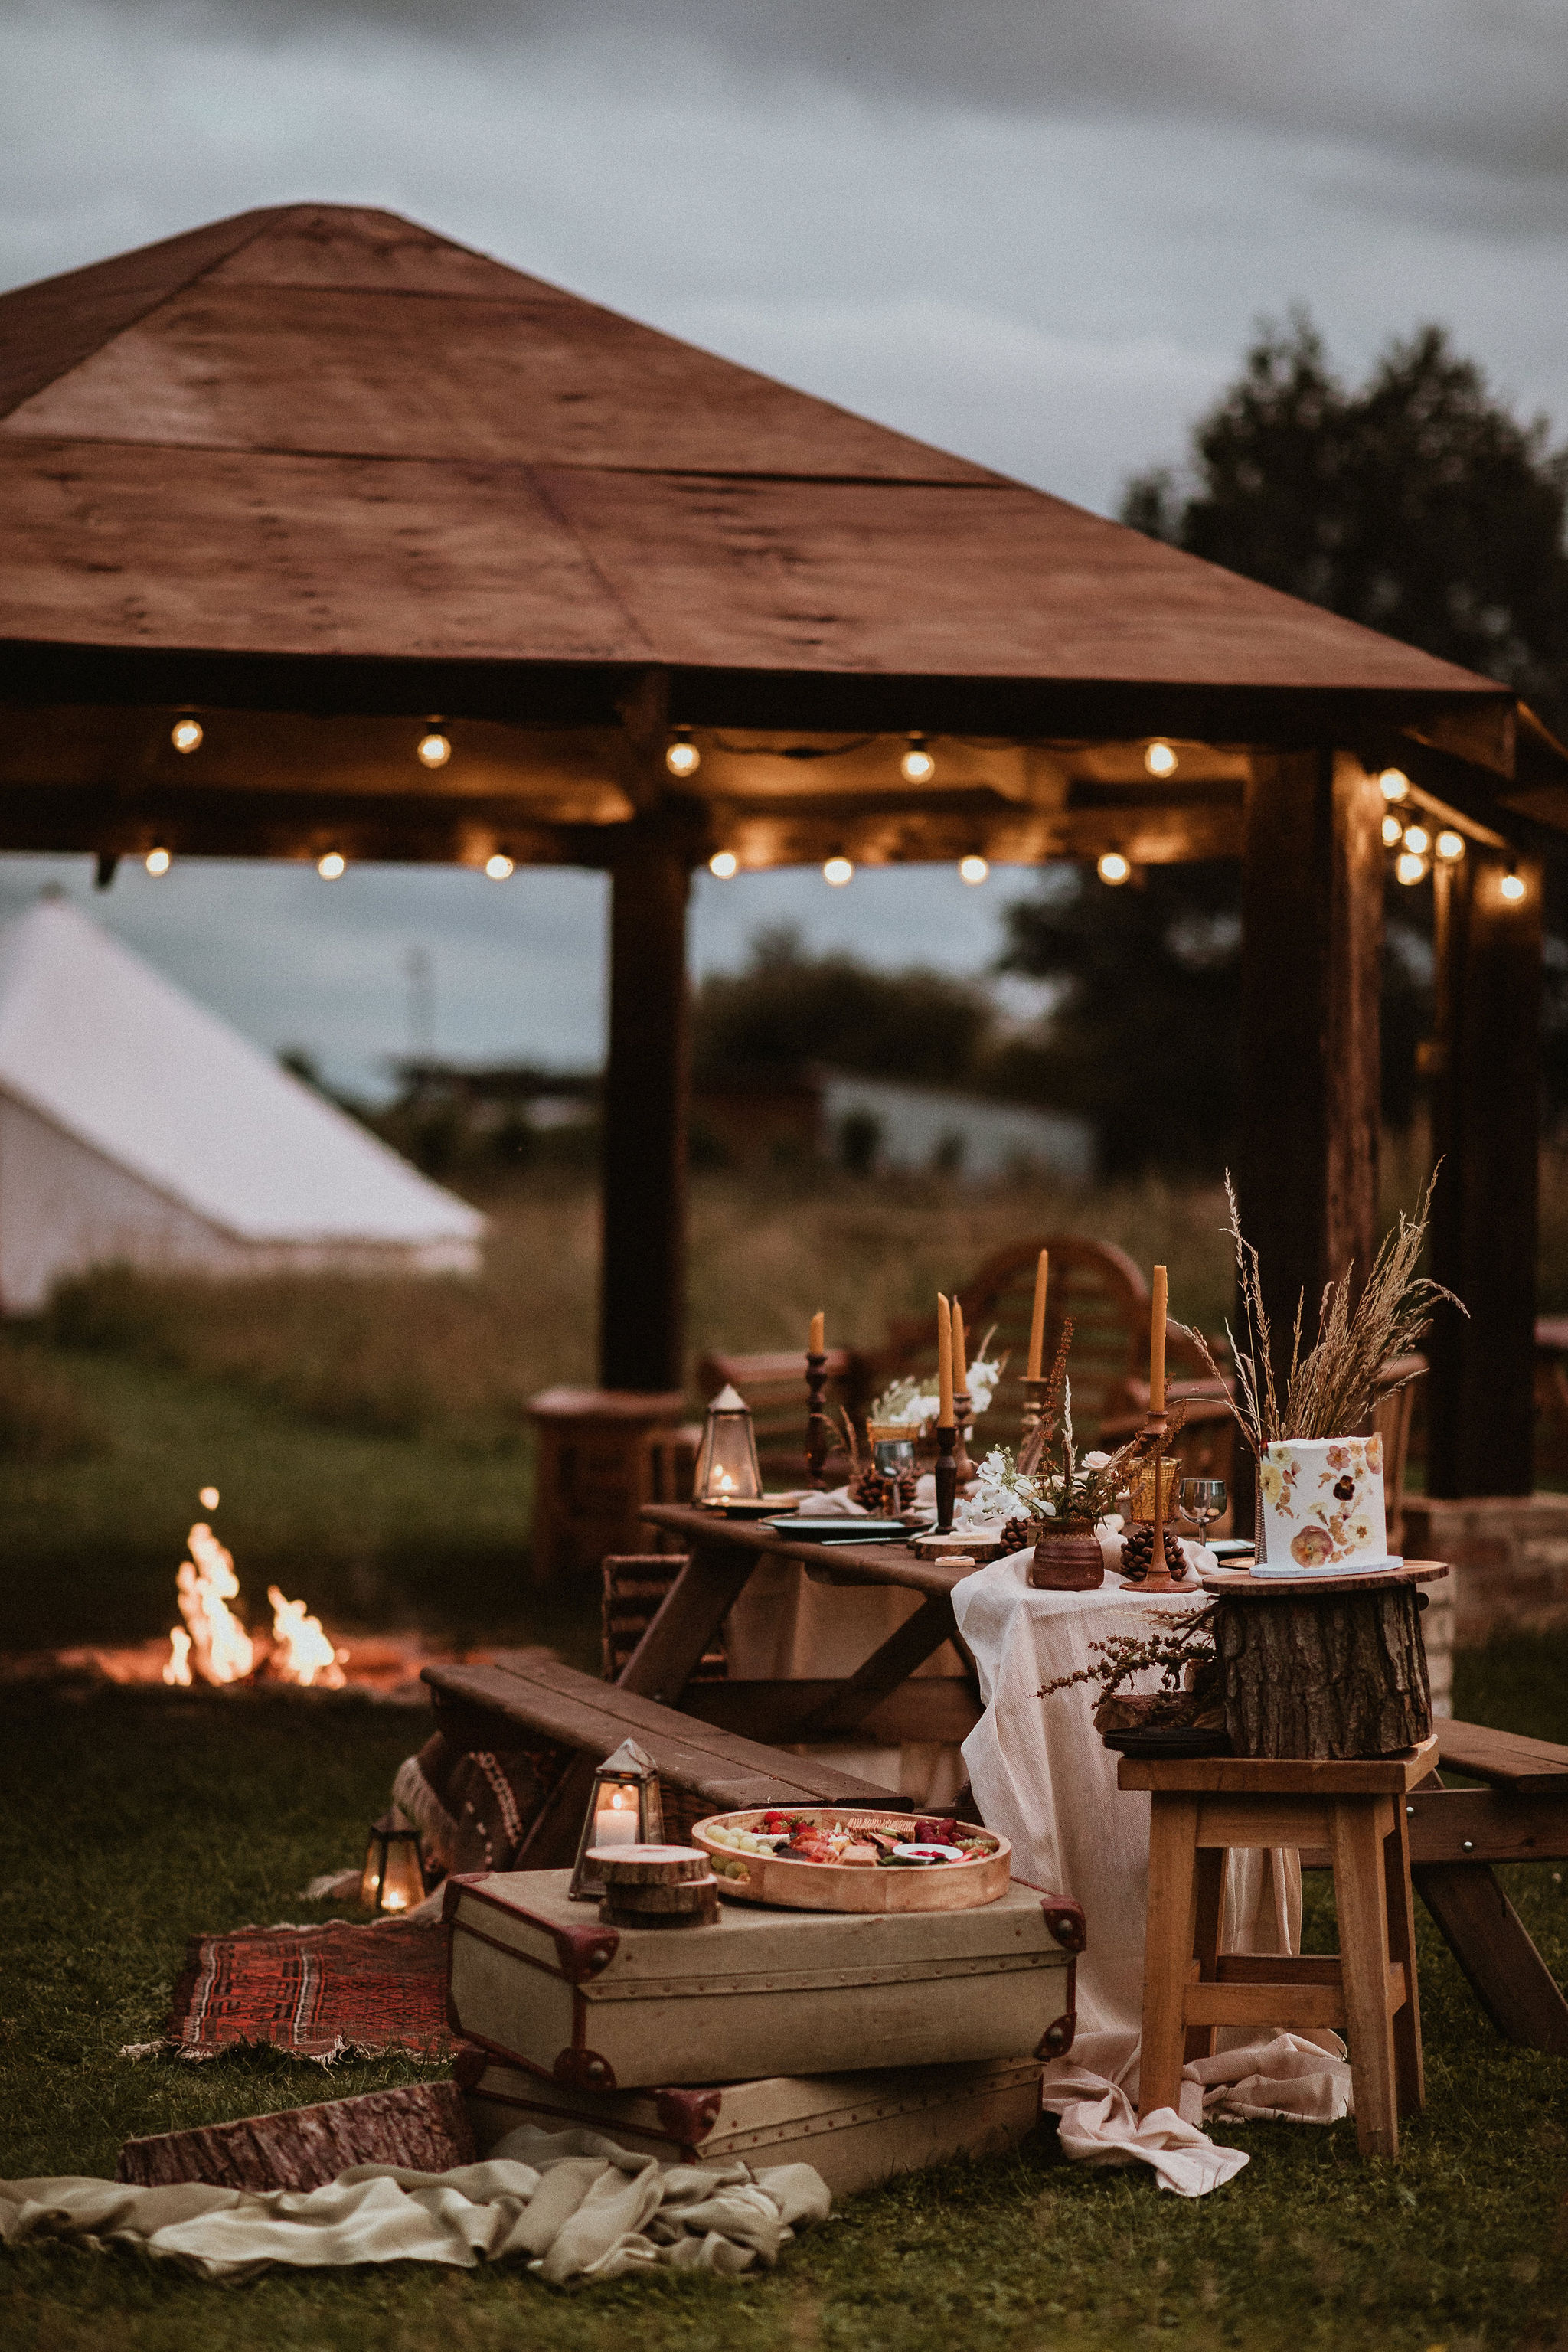 Firepit & Tablescape